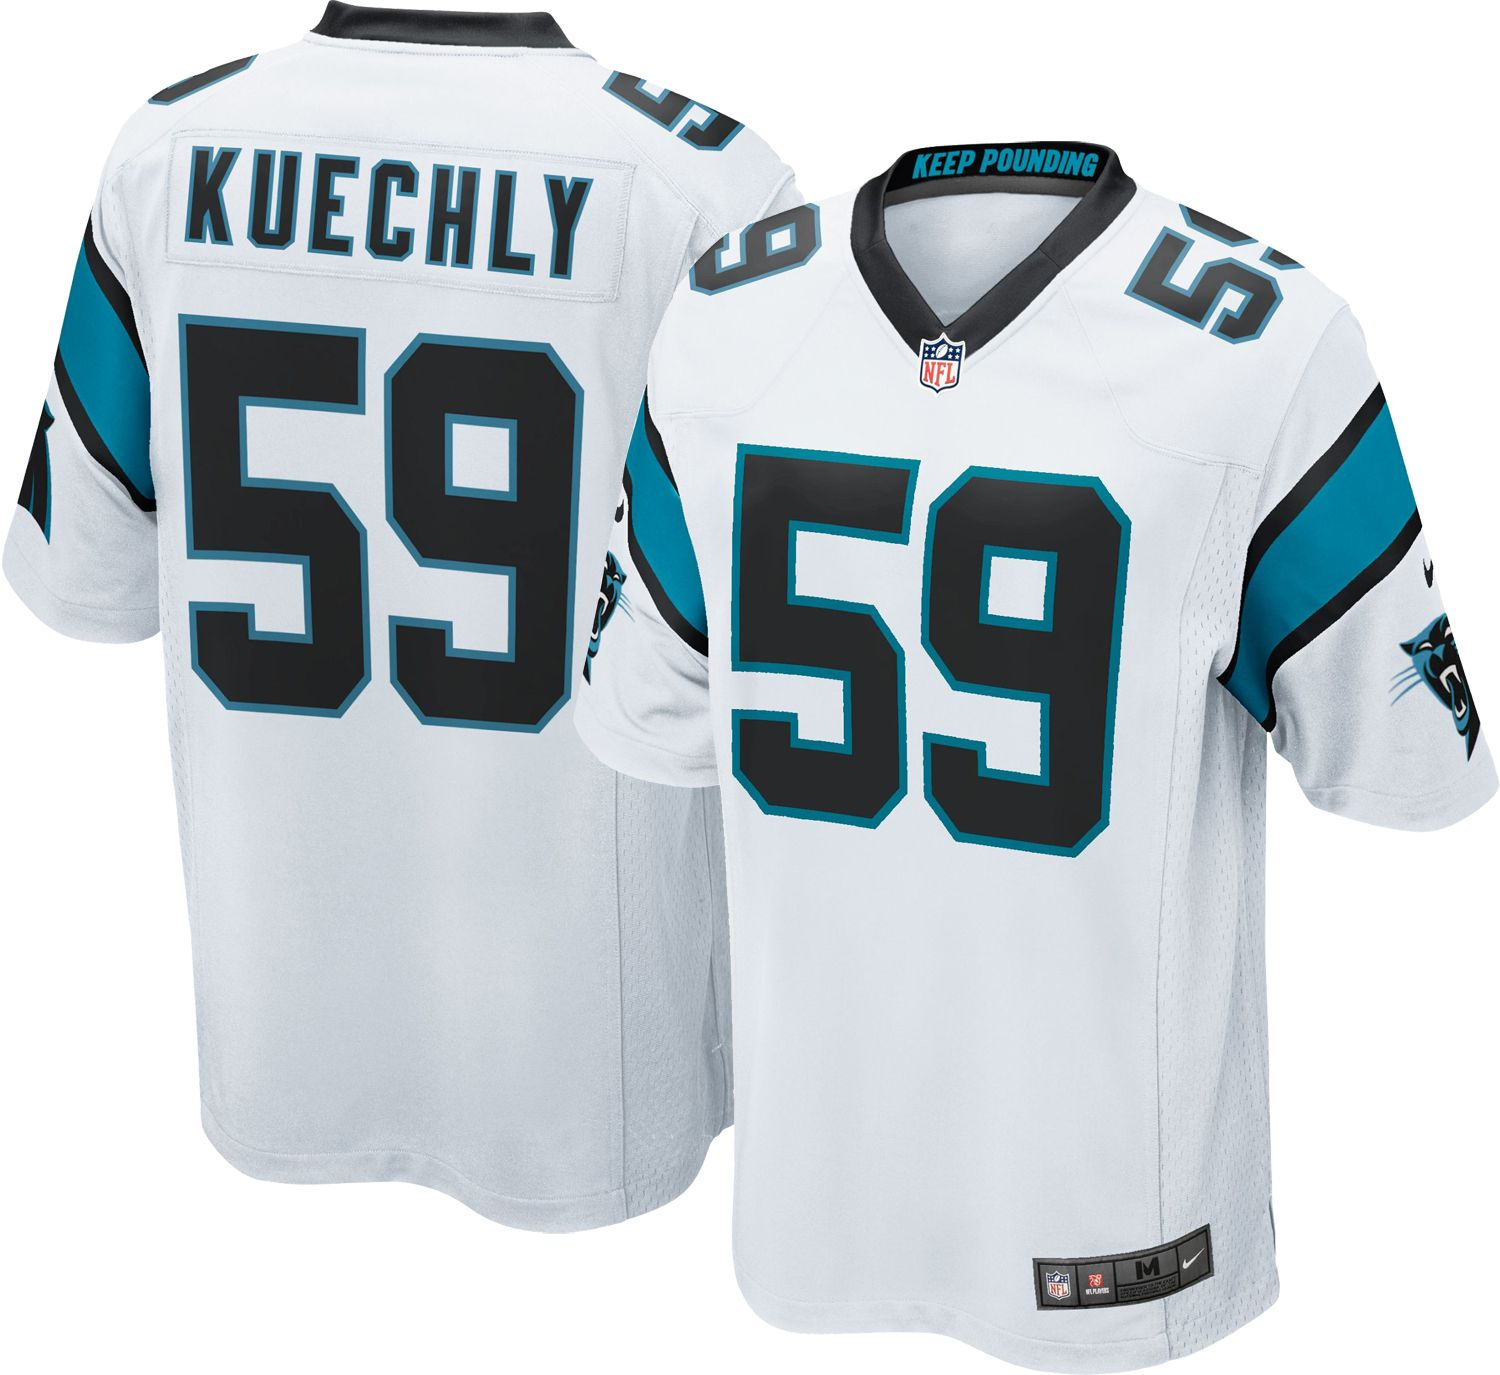 designer fashion c84d3 57137 panthers kuechly jersey